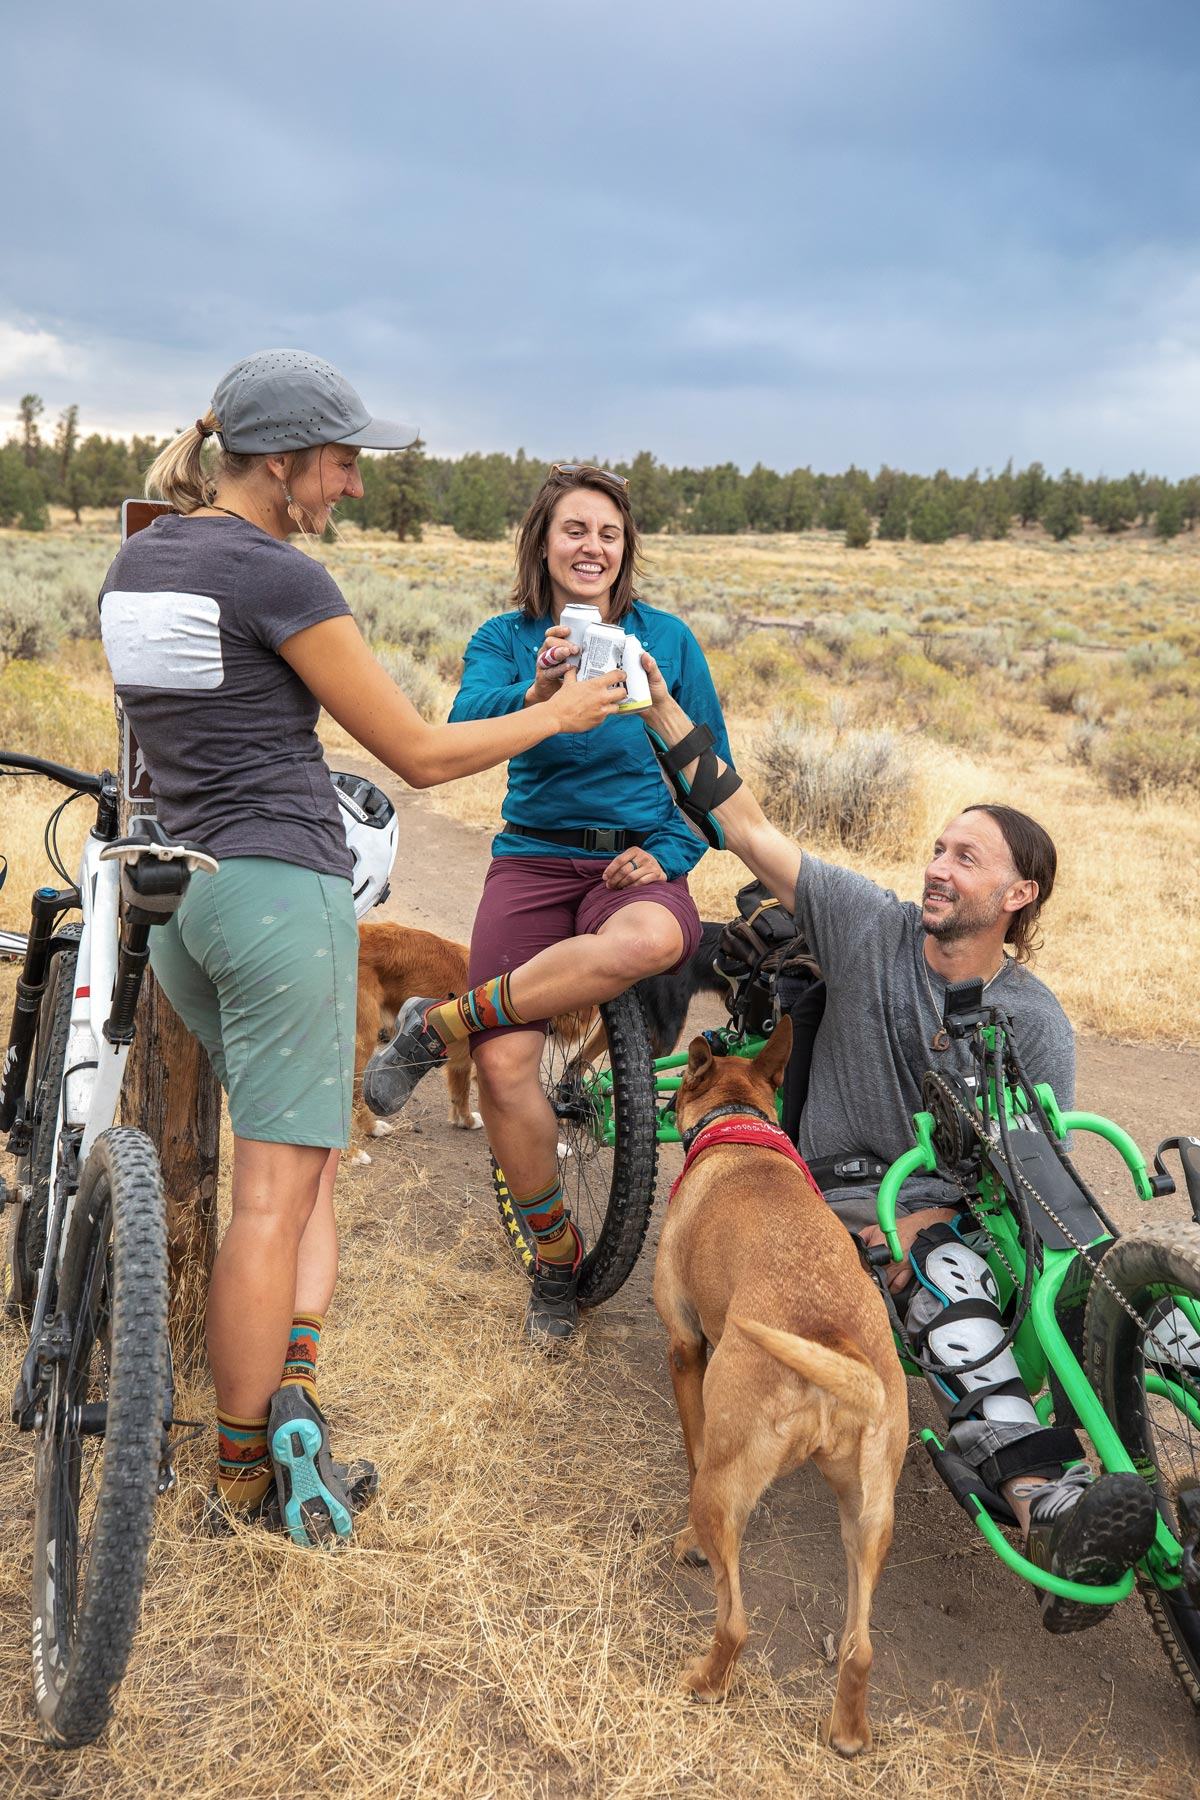 photo of group of mountain bikers, one riding an adaptive offroad handcycle.